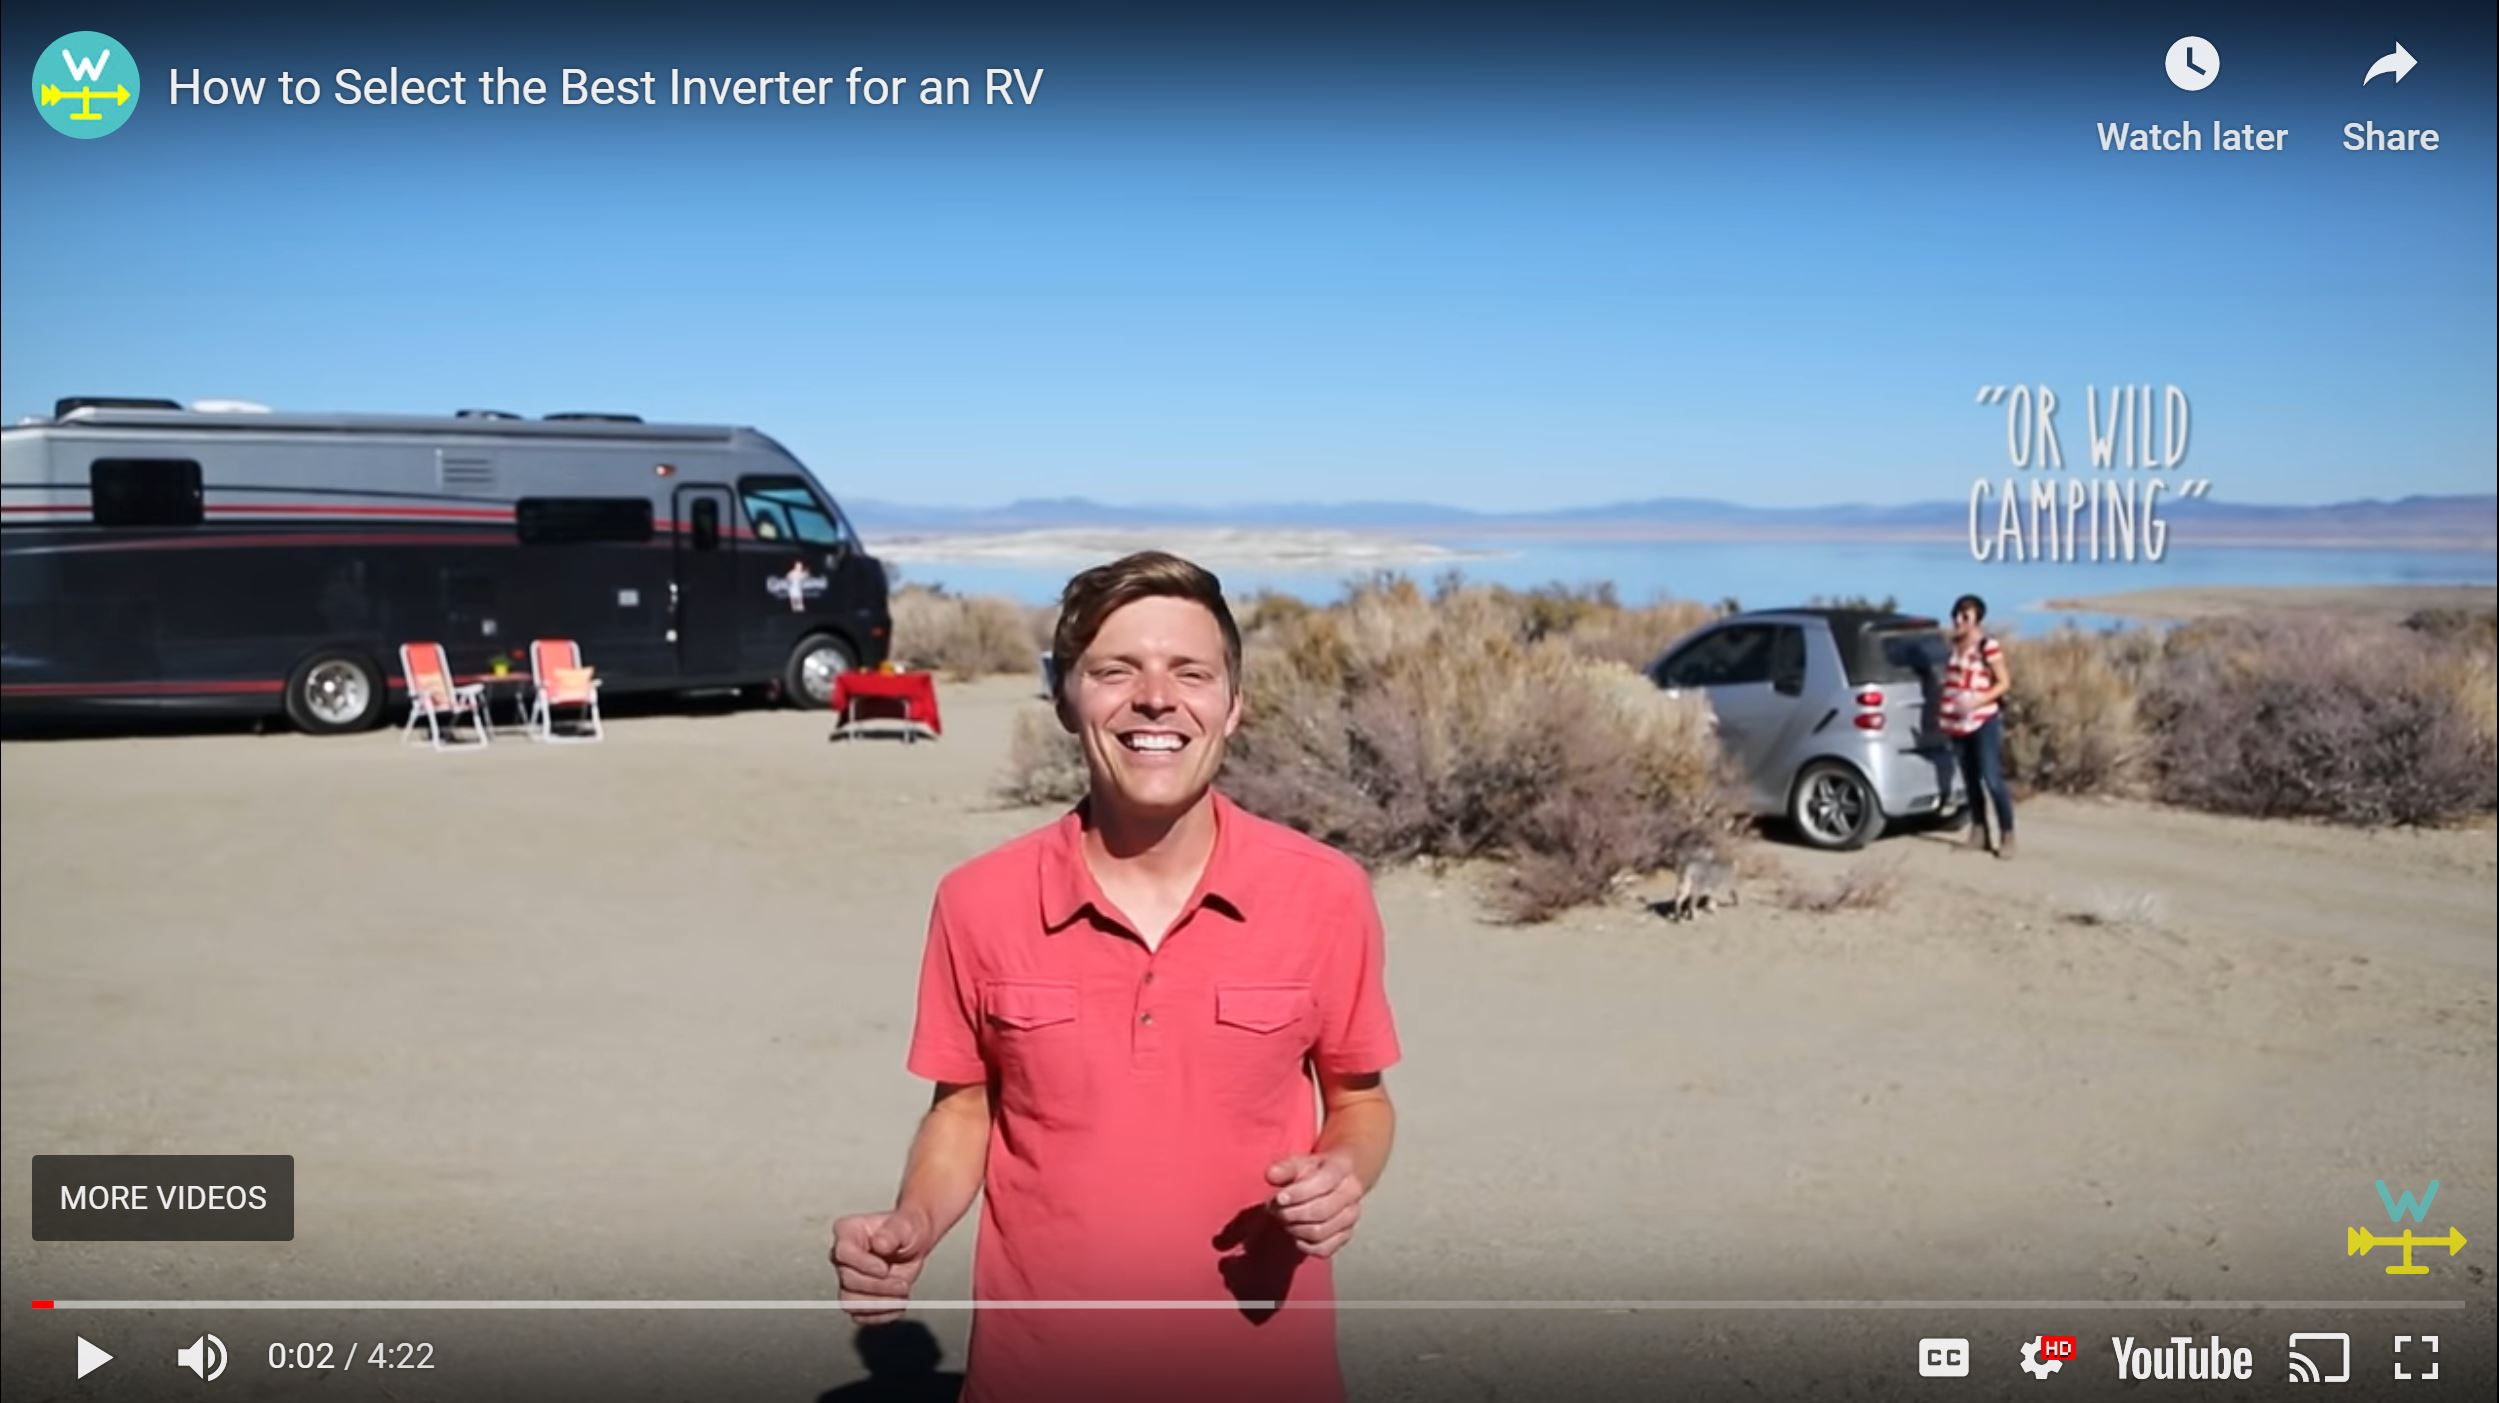 jason and nikki wynn explaining which inverter is best to power electronics in an RV